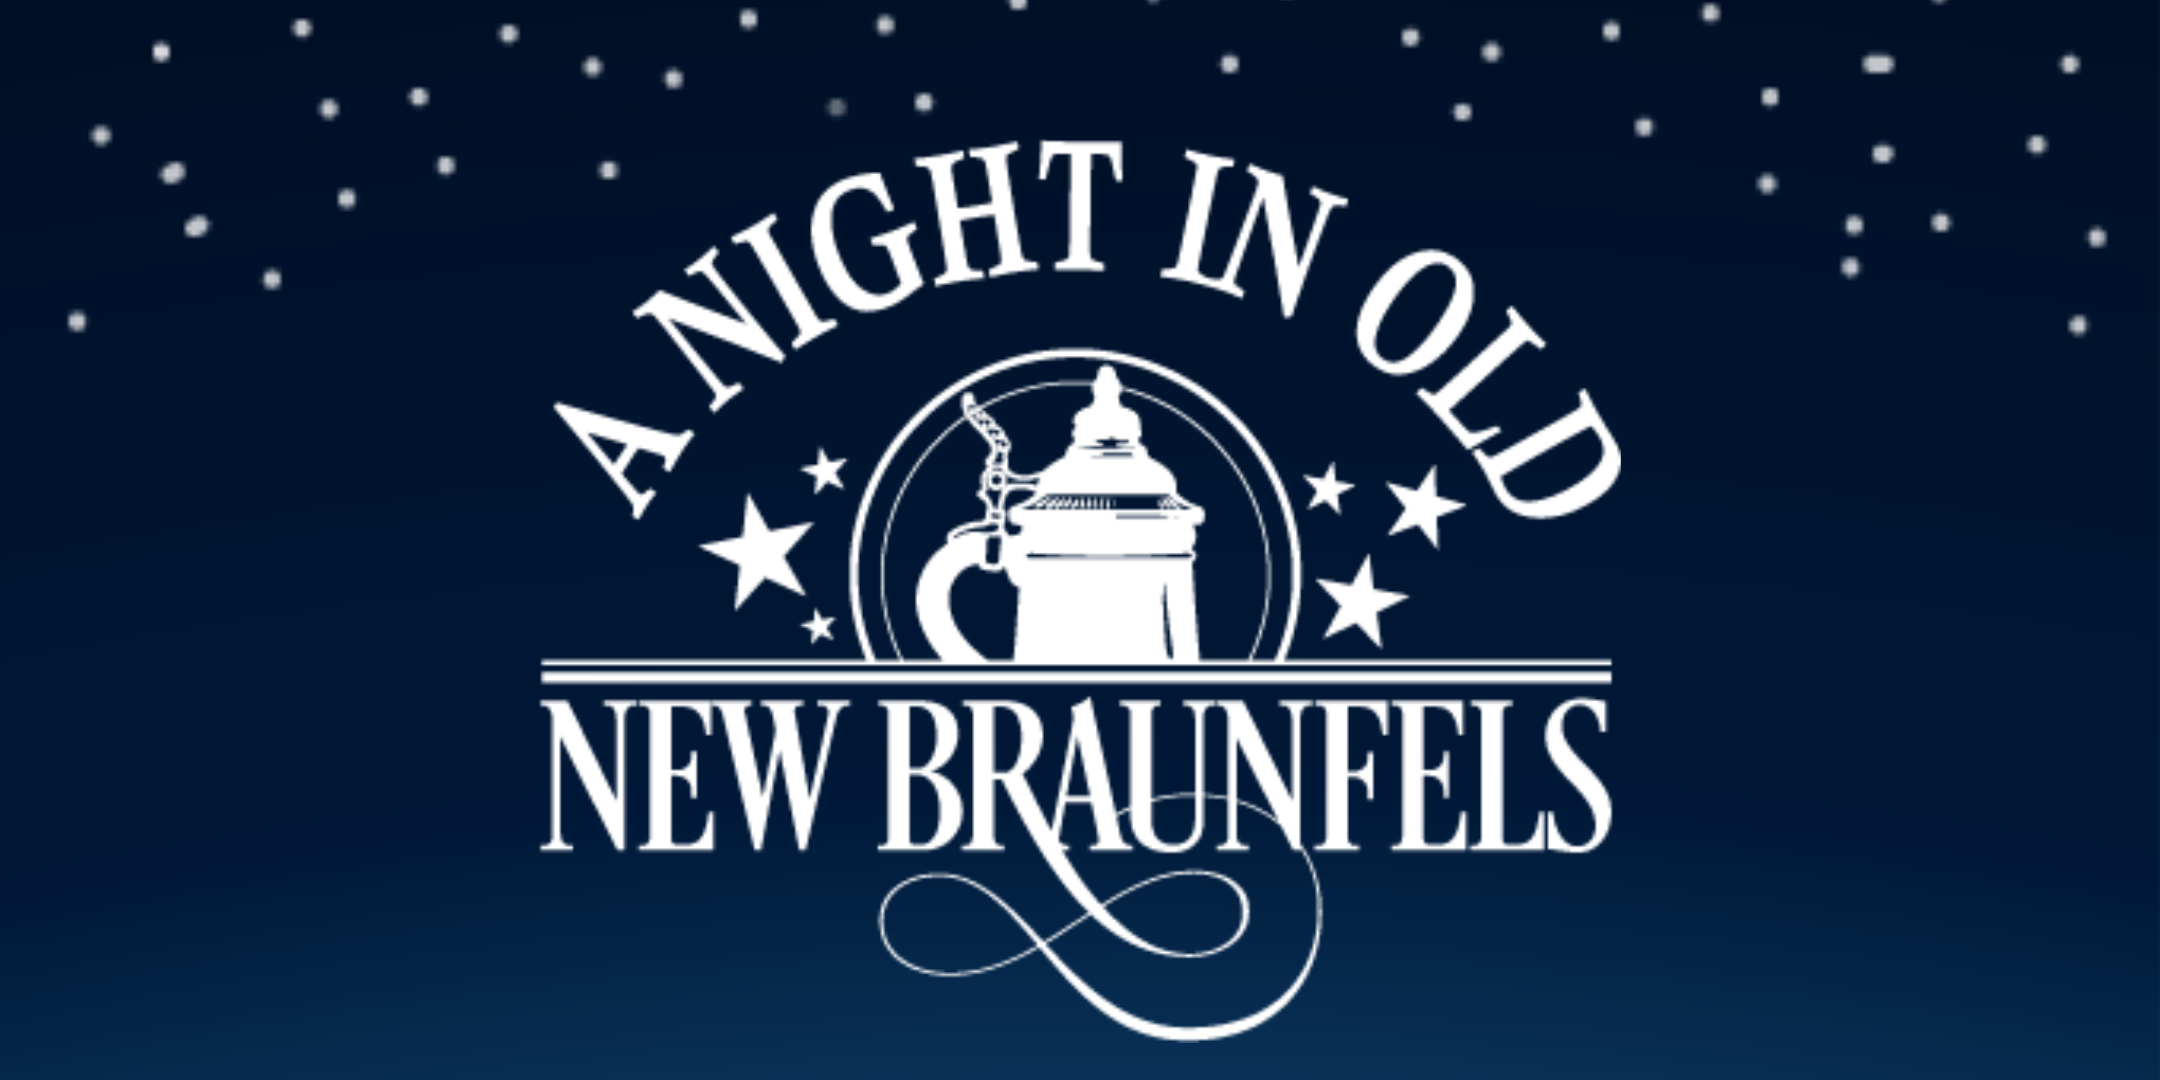 A Night in Old New Braunfles